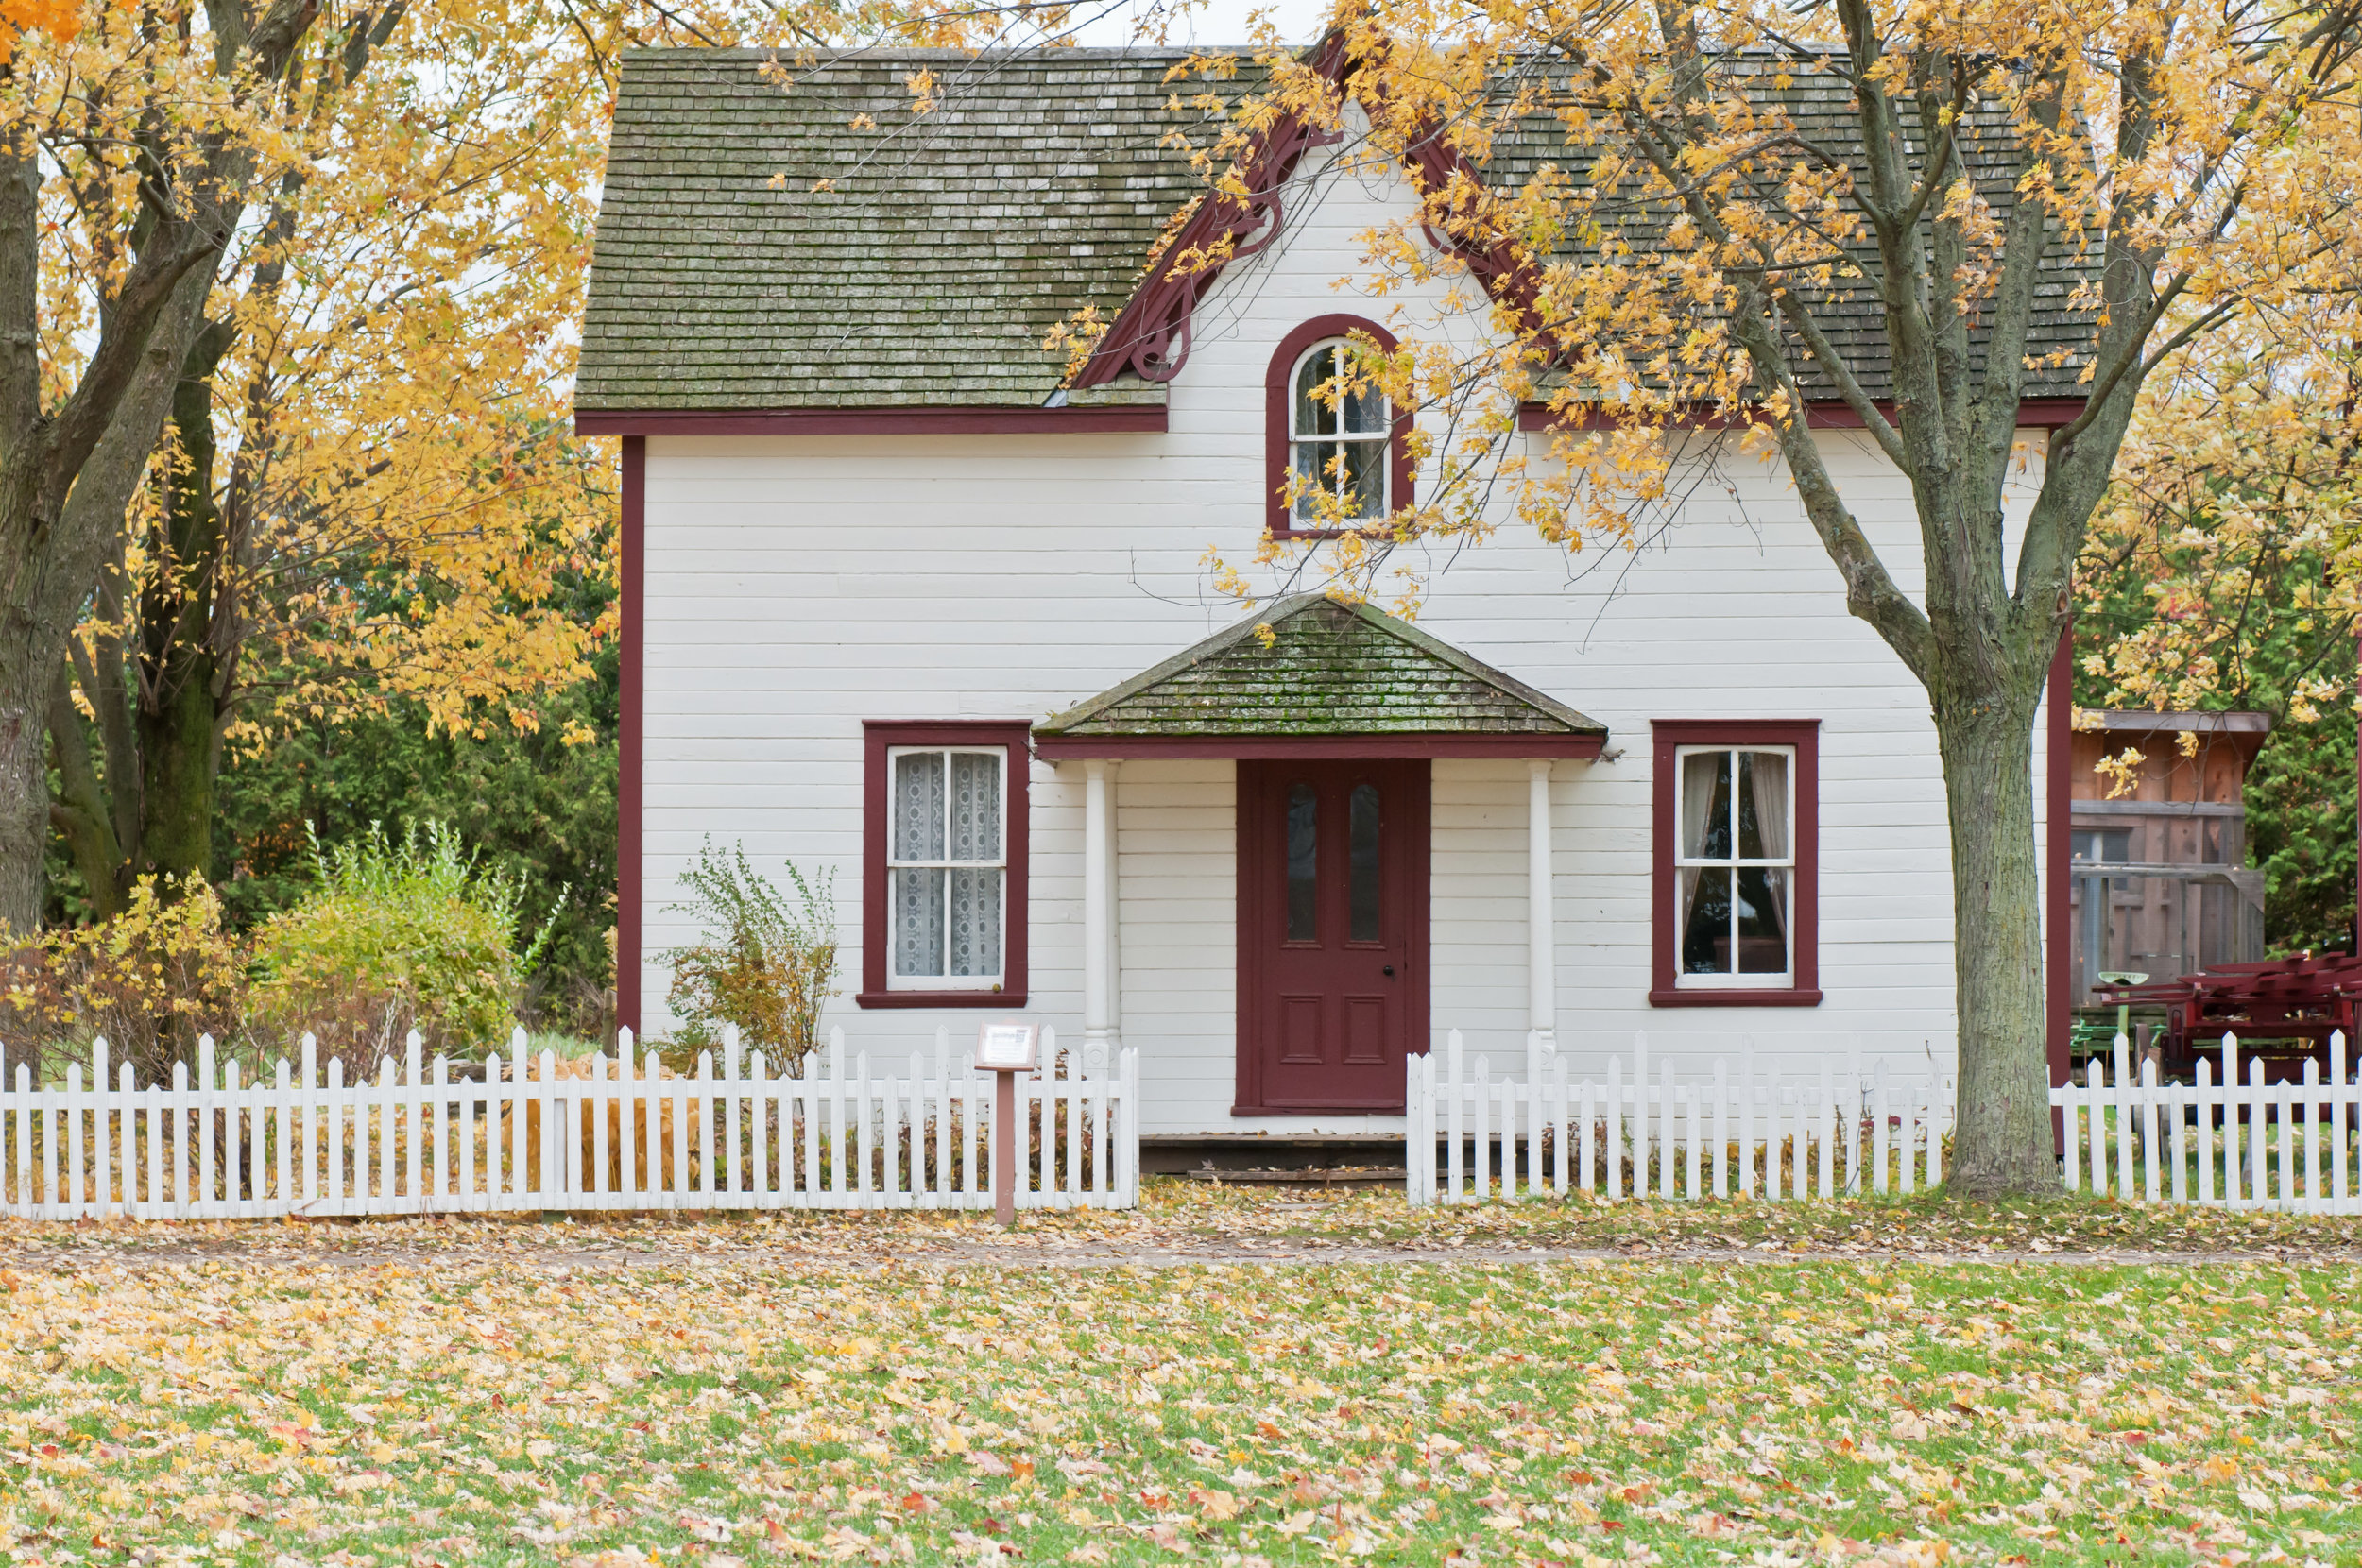 Home Insurance - There's no place like it - and it's yours, so make sure you protect it.  Find out more about our homeowners or renters coverage.  (If you combine it with auto, you might just be able to get a discount!)